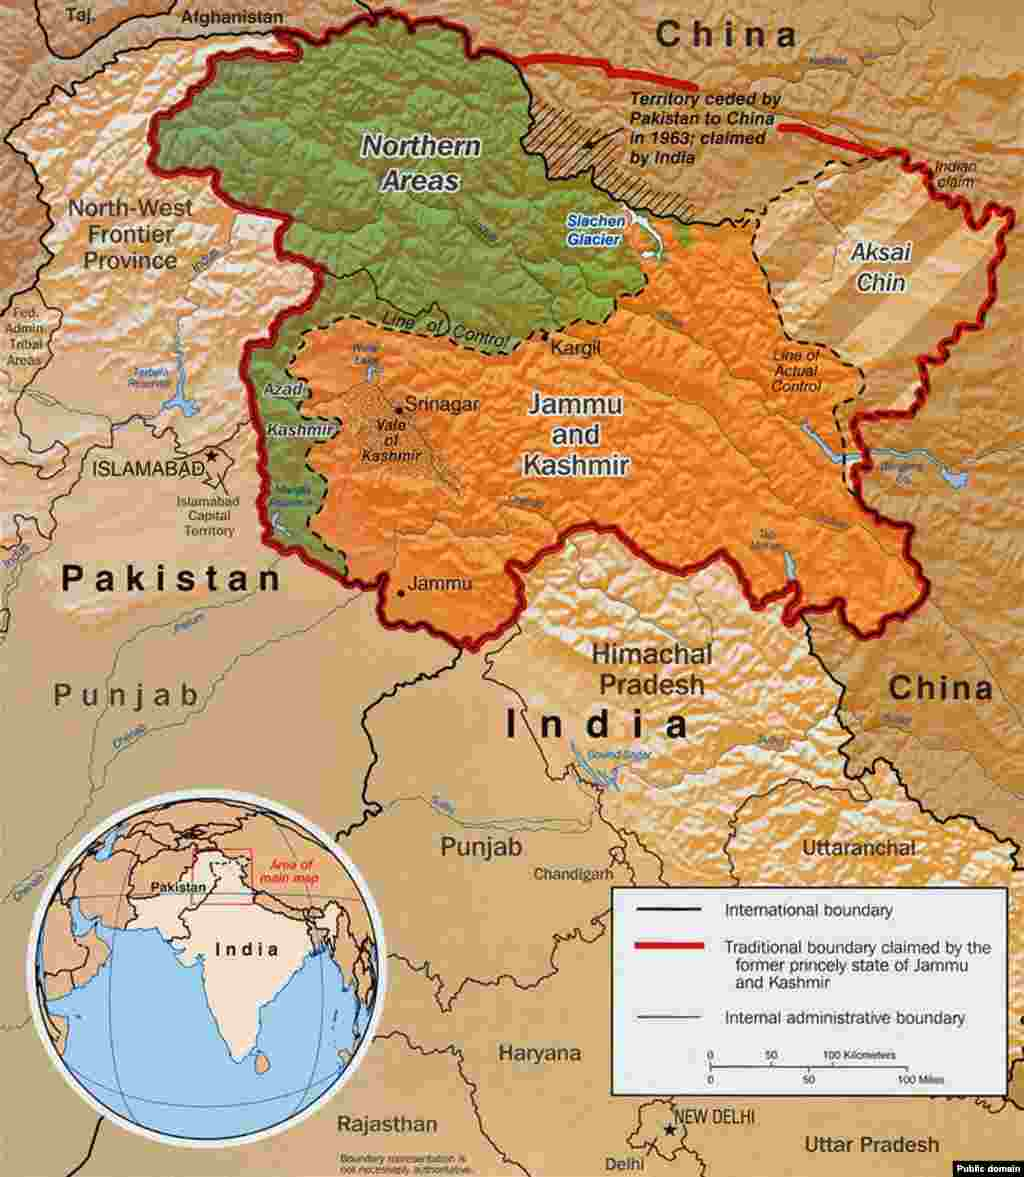 "As the two countries dug in on their respective claims in Kashmir, the disputed region was split into a Pakistani-held north and Indian-held south. The ""line of control"" was to become the front line of the ensuing conflict. The United Nations recommended that India prepare for a referendum that would decide whether Kashmir would join with India or Pakistan, a vote that was never held."